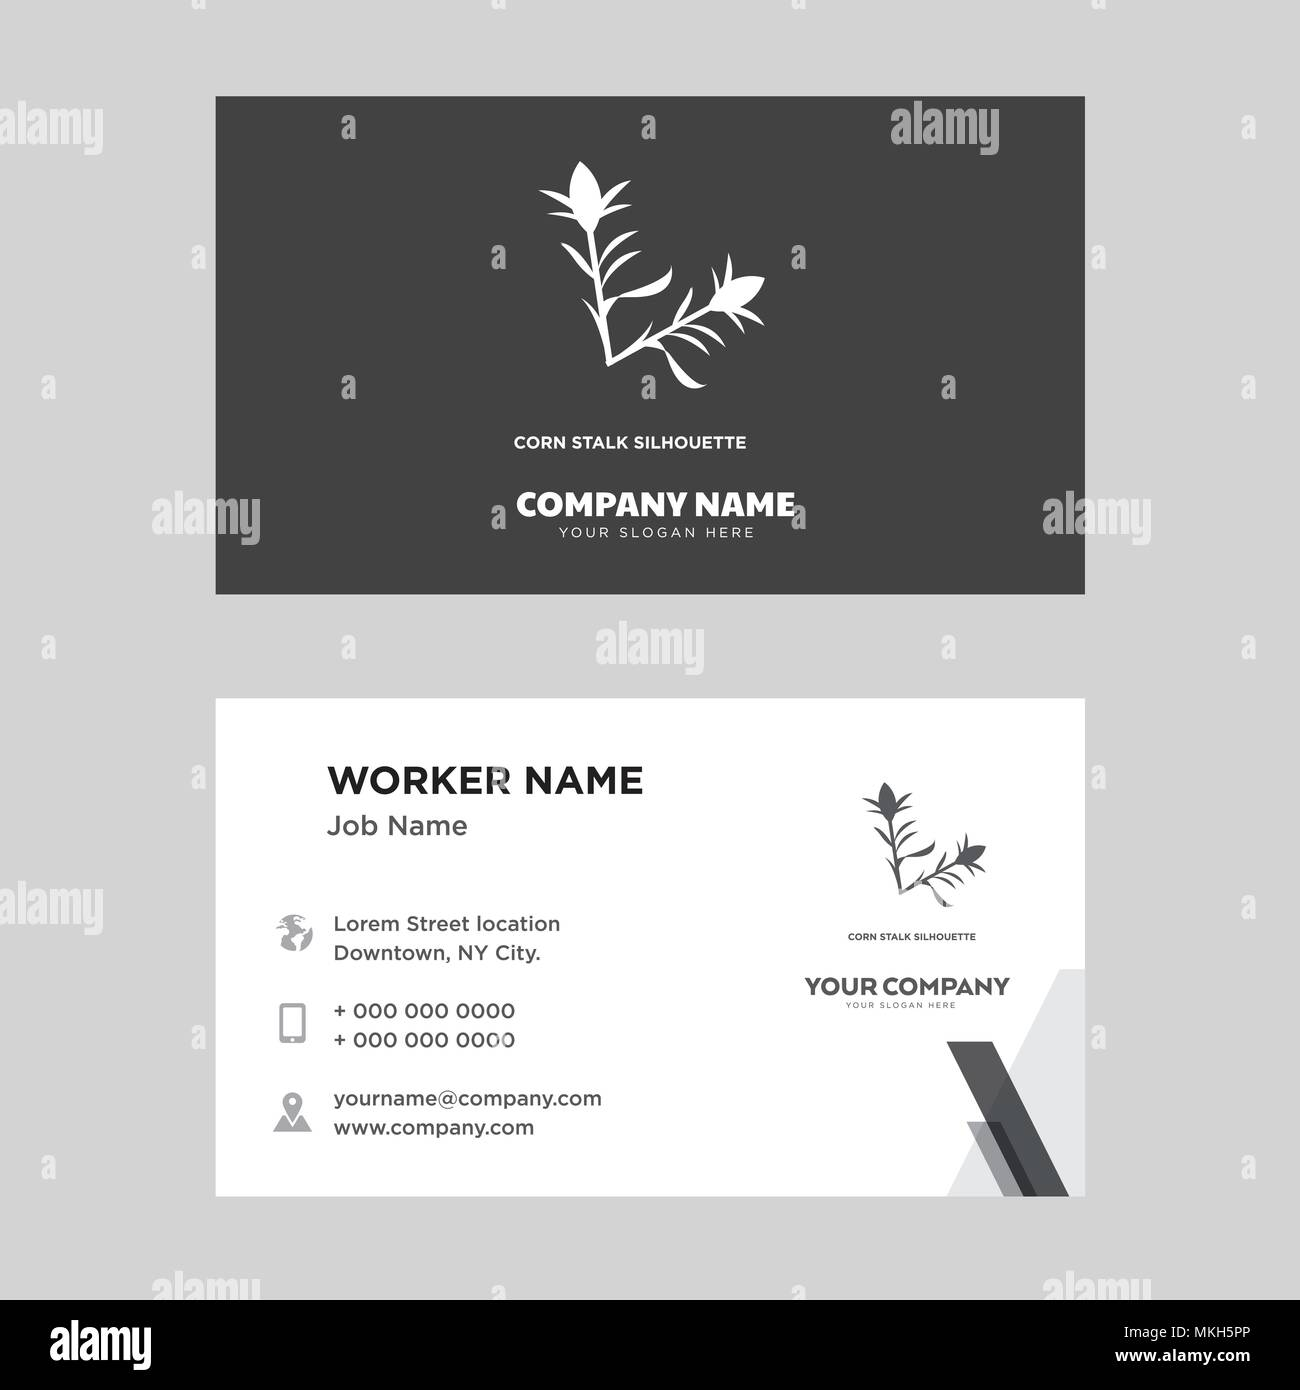 corn stalk business card design template, Visiting for your company ...